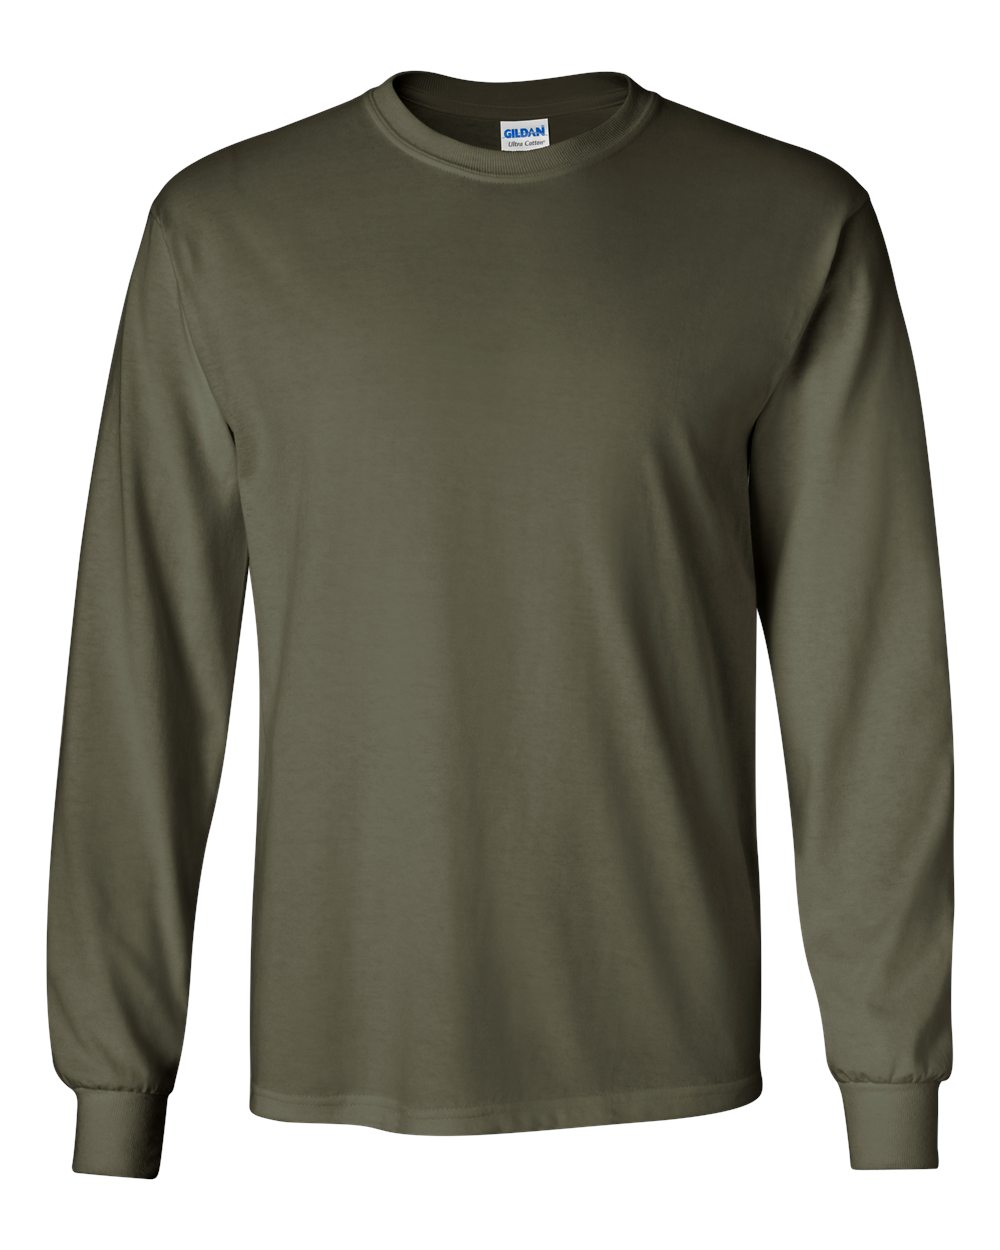 Gildan_2400_Military_Green_Front_High.jpg